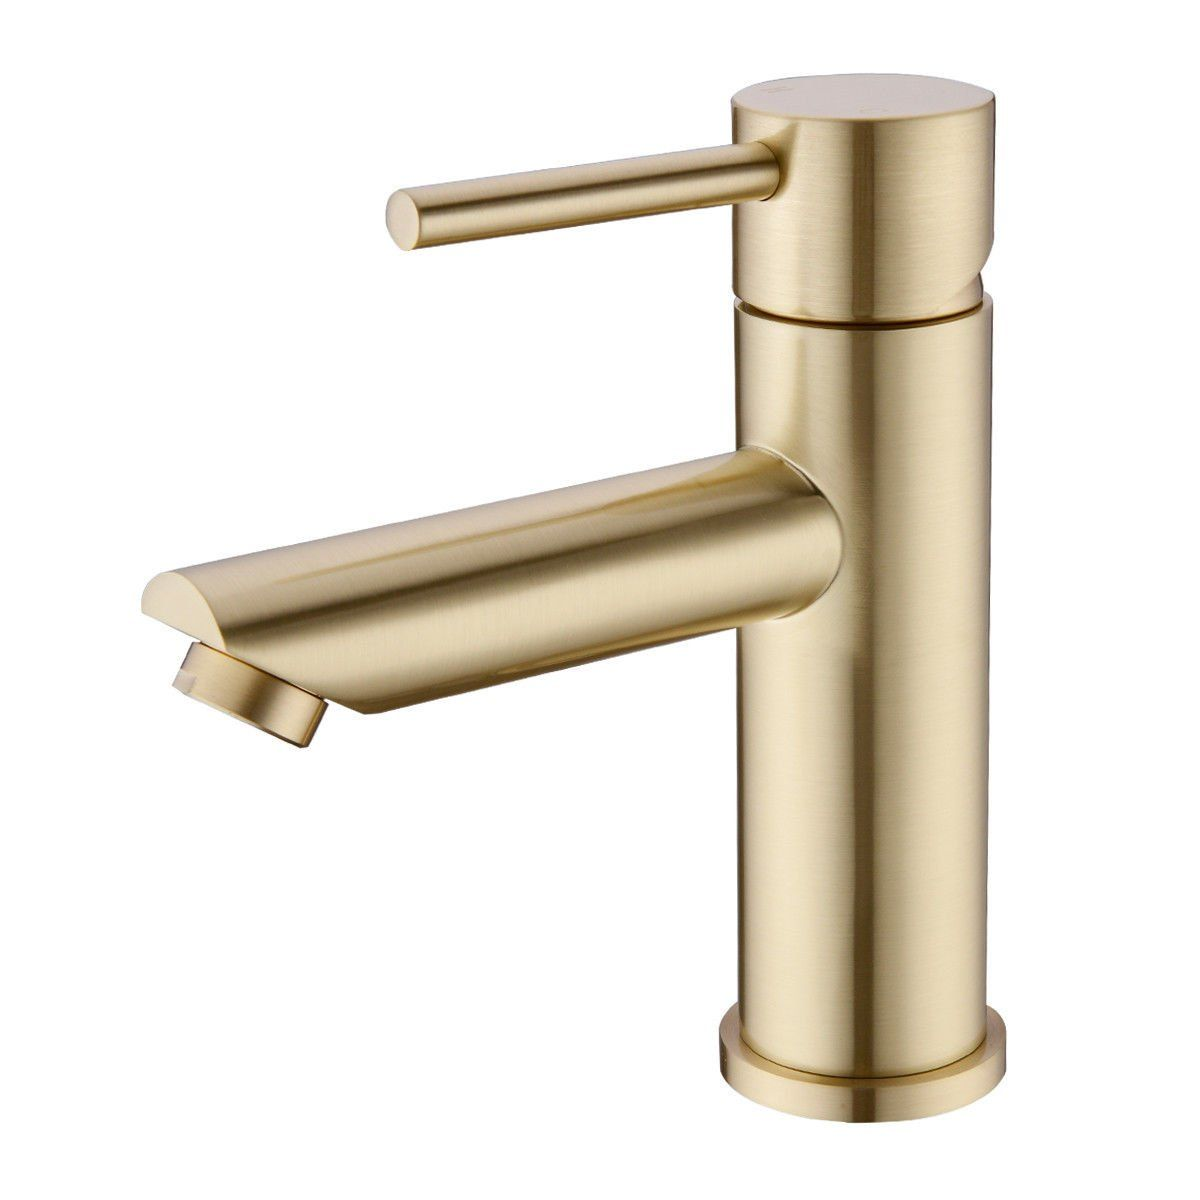 Trustmi Brass Brushed Gold Single Lever Bathroom Basin Mixer Tap Sink Faucet Short Amazon Co Uk Diy To Gold Kitchen Faucet Basin Mixer Taps Sink Mixer Taps